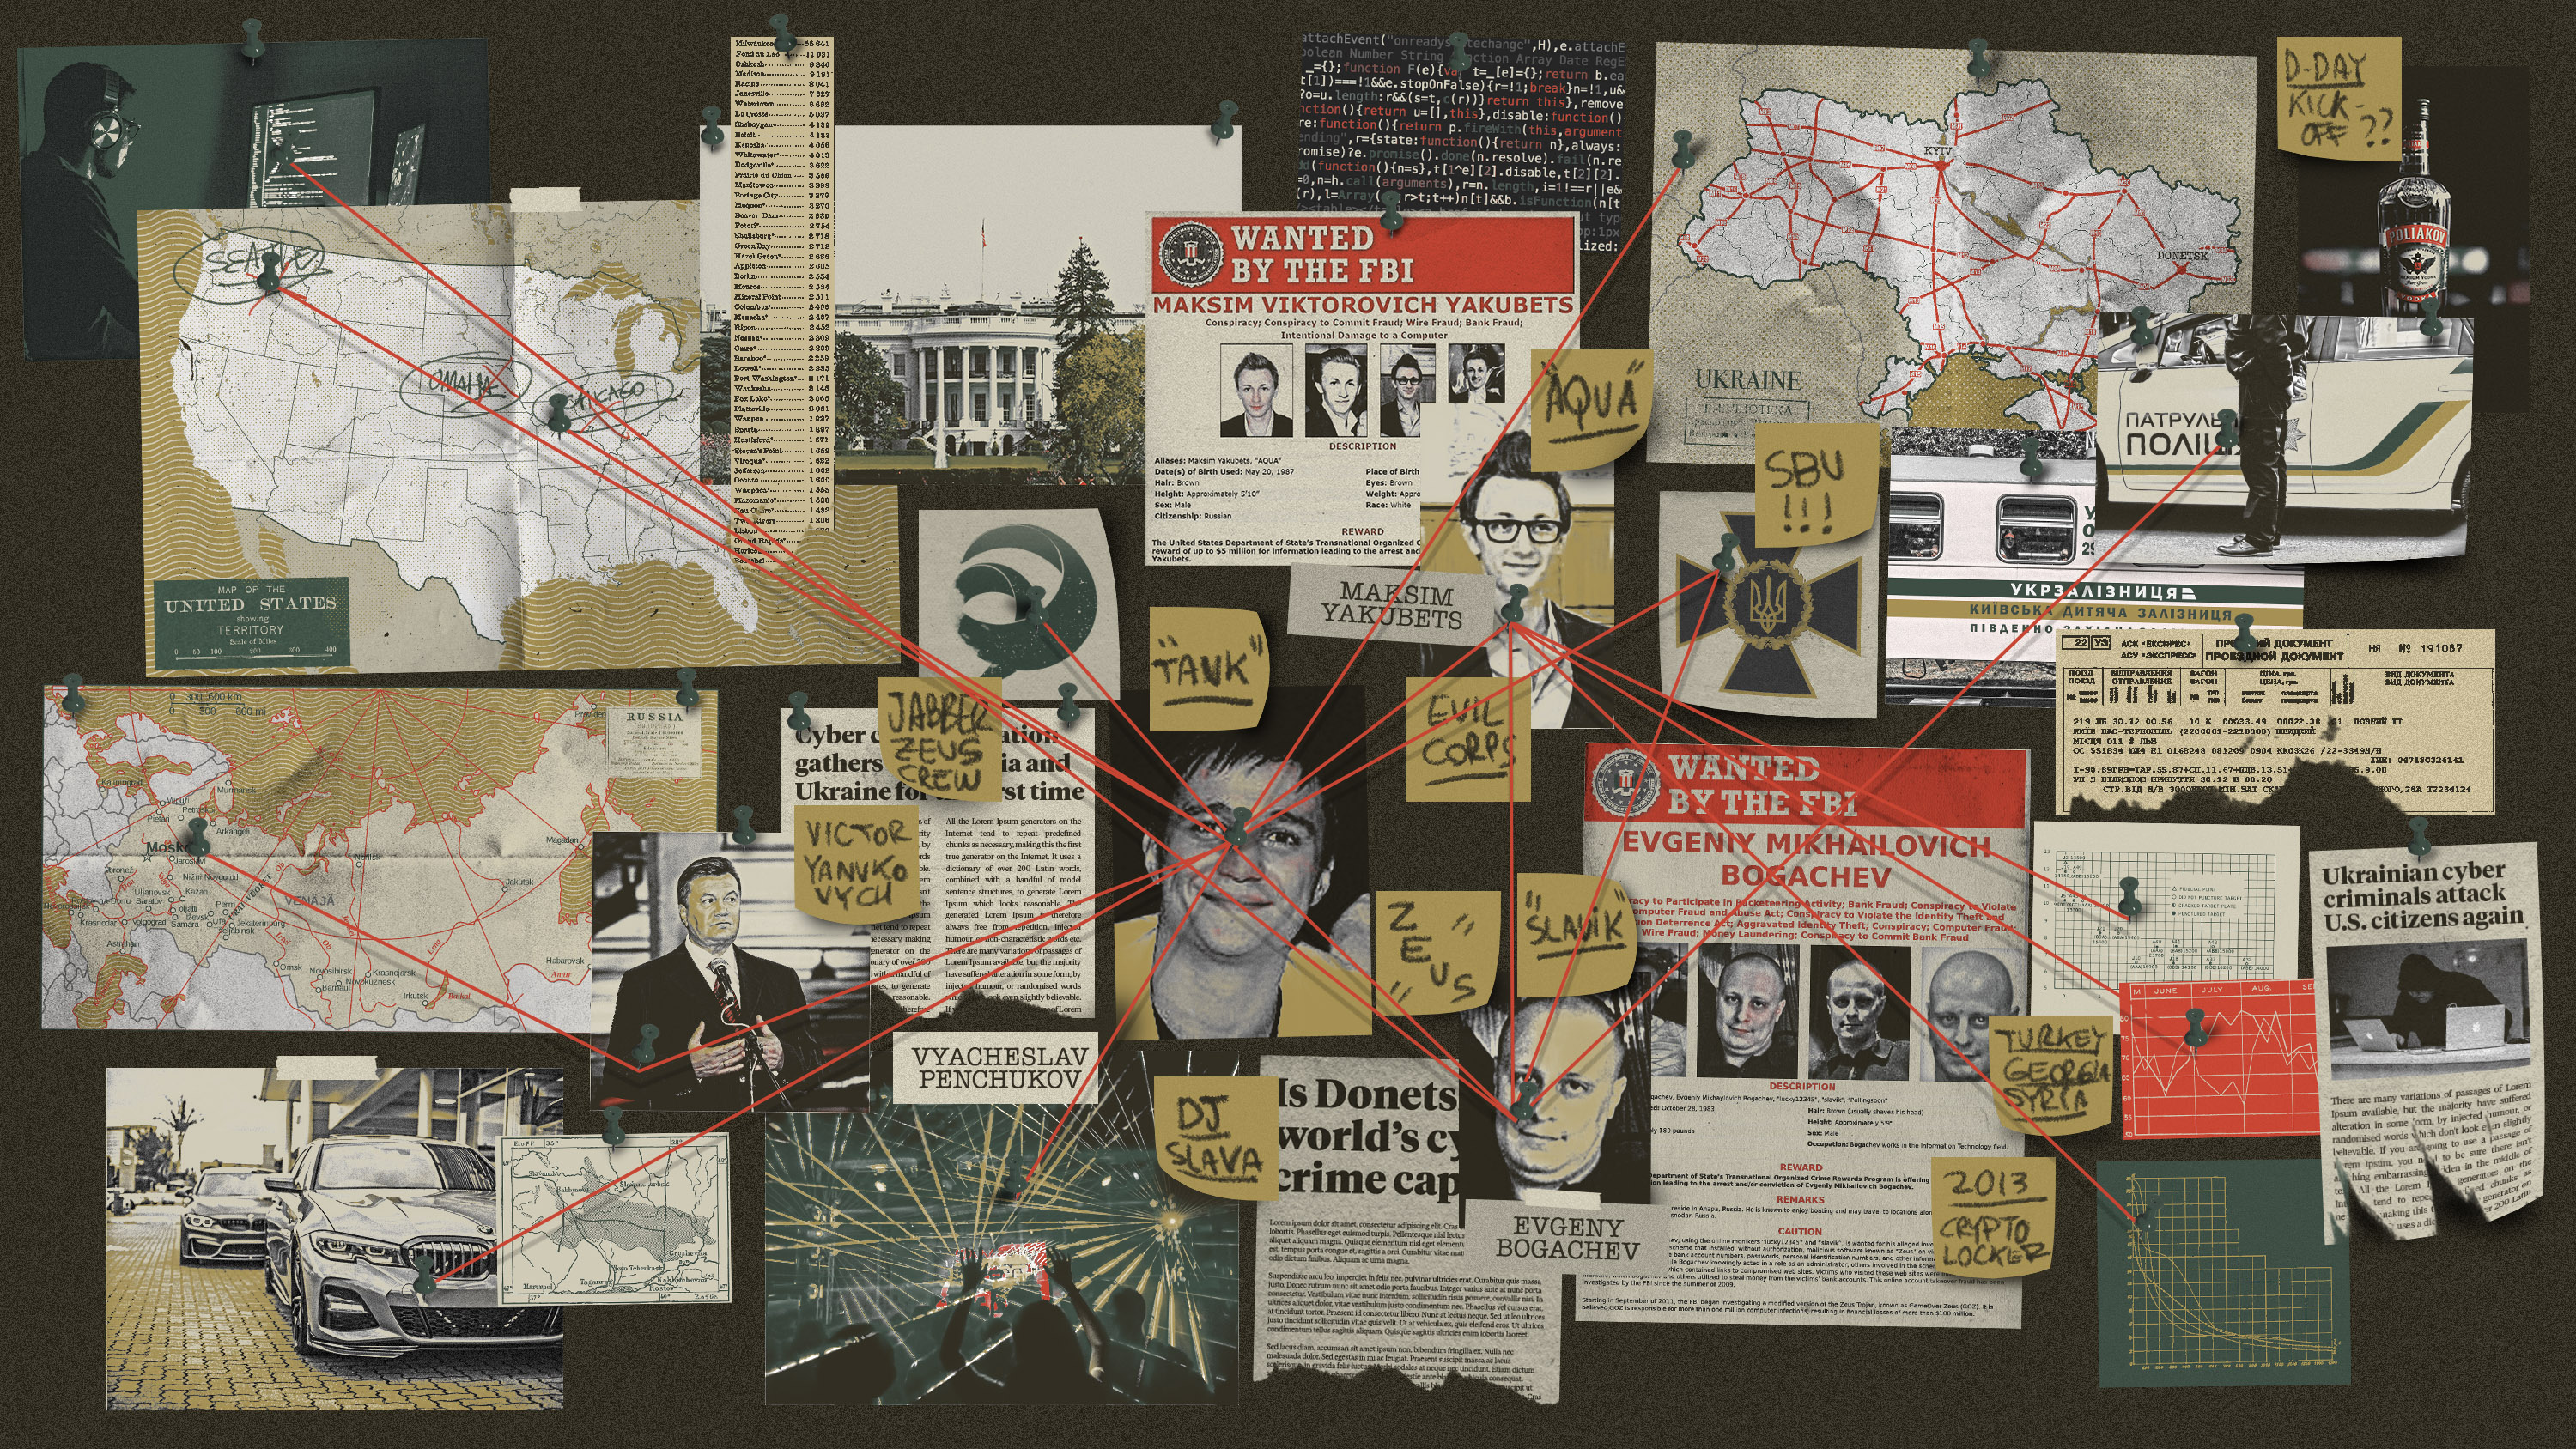 conceptual illustration showing a police evidence board with reference to various people, places, and things in the story